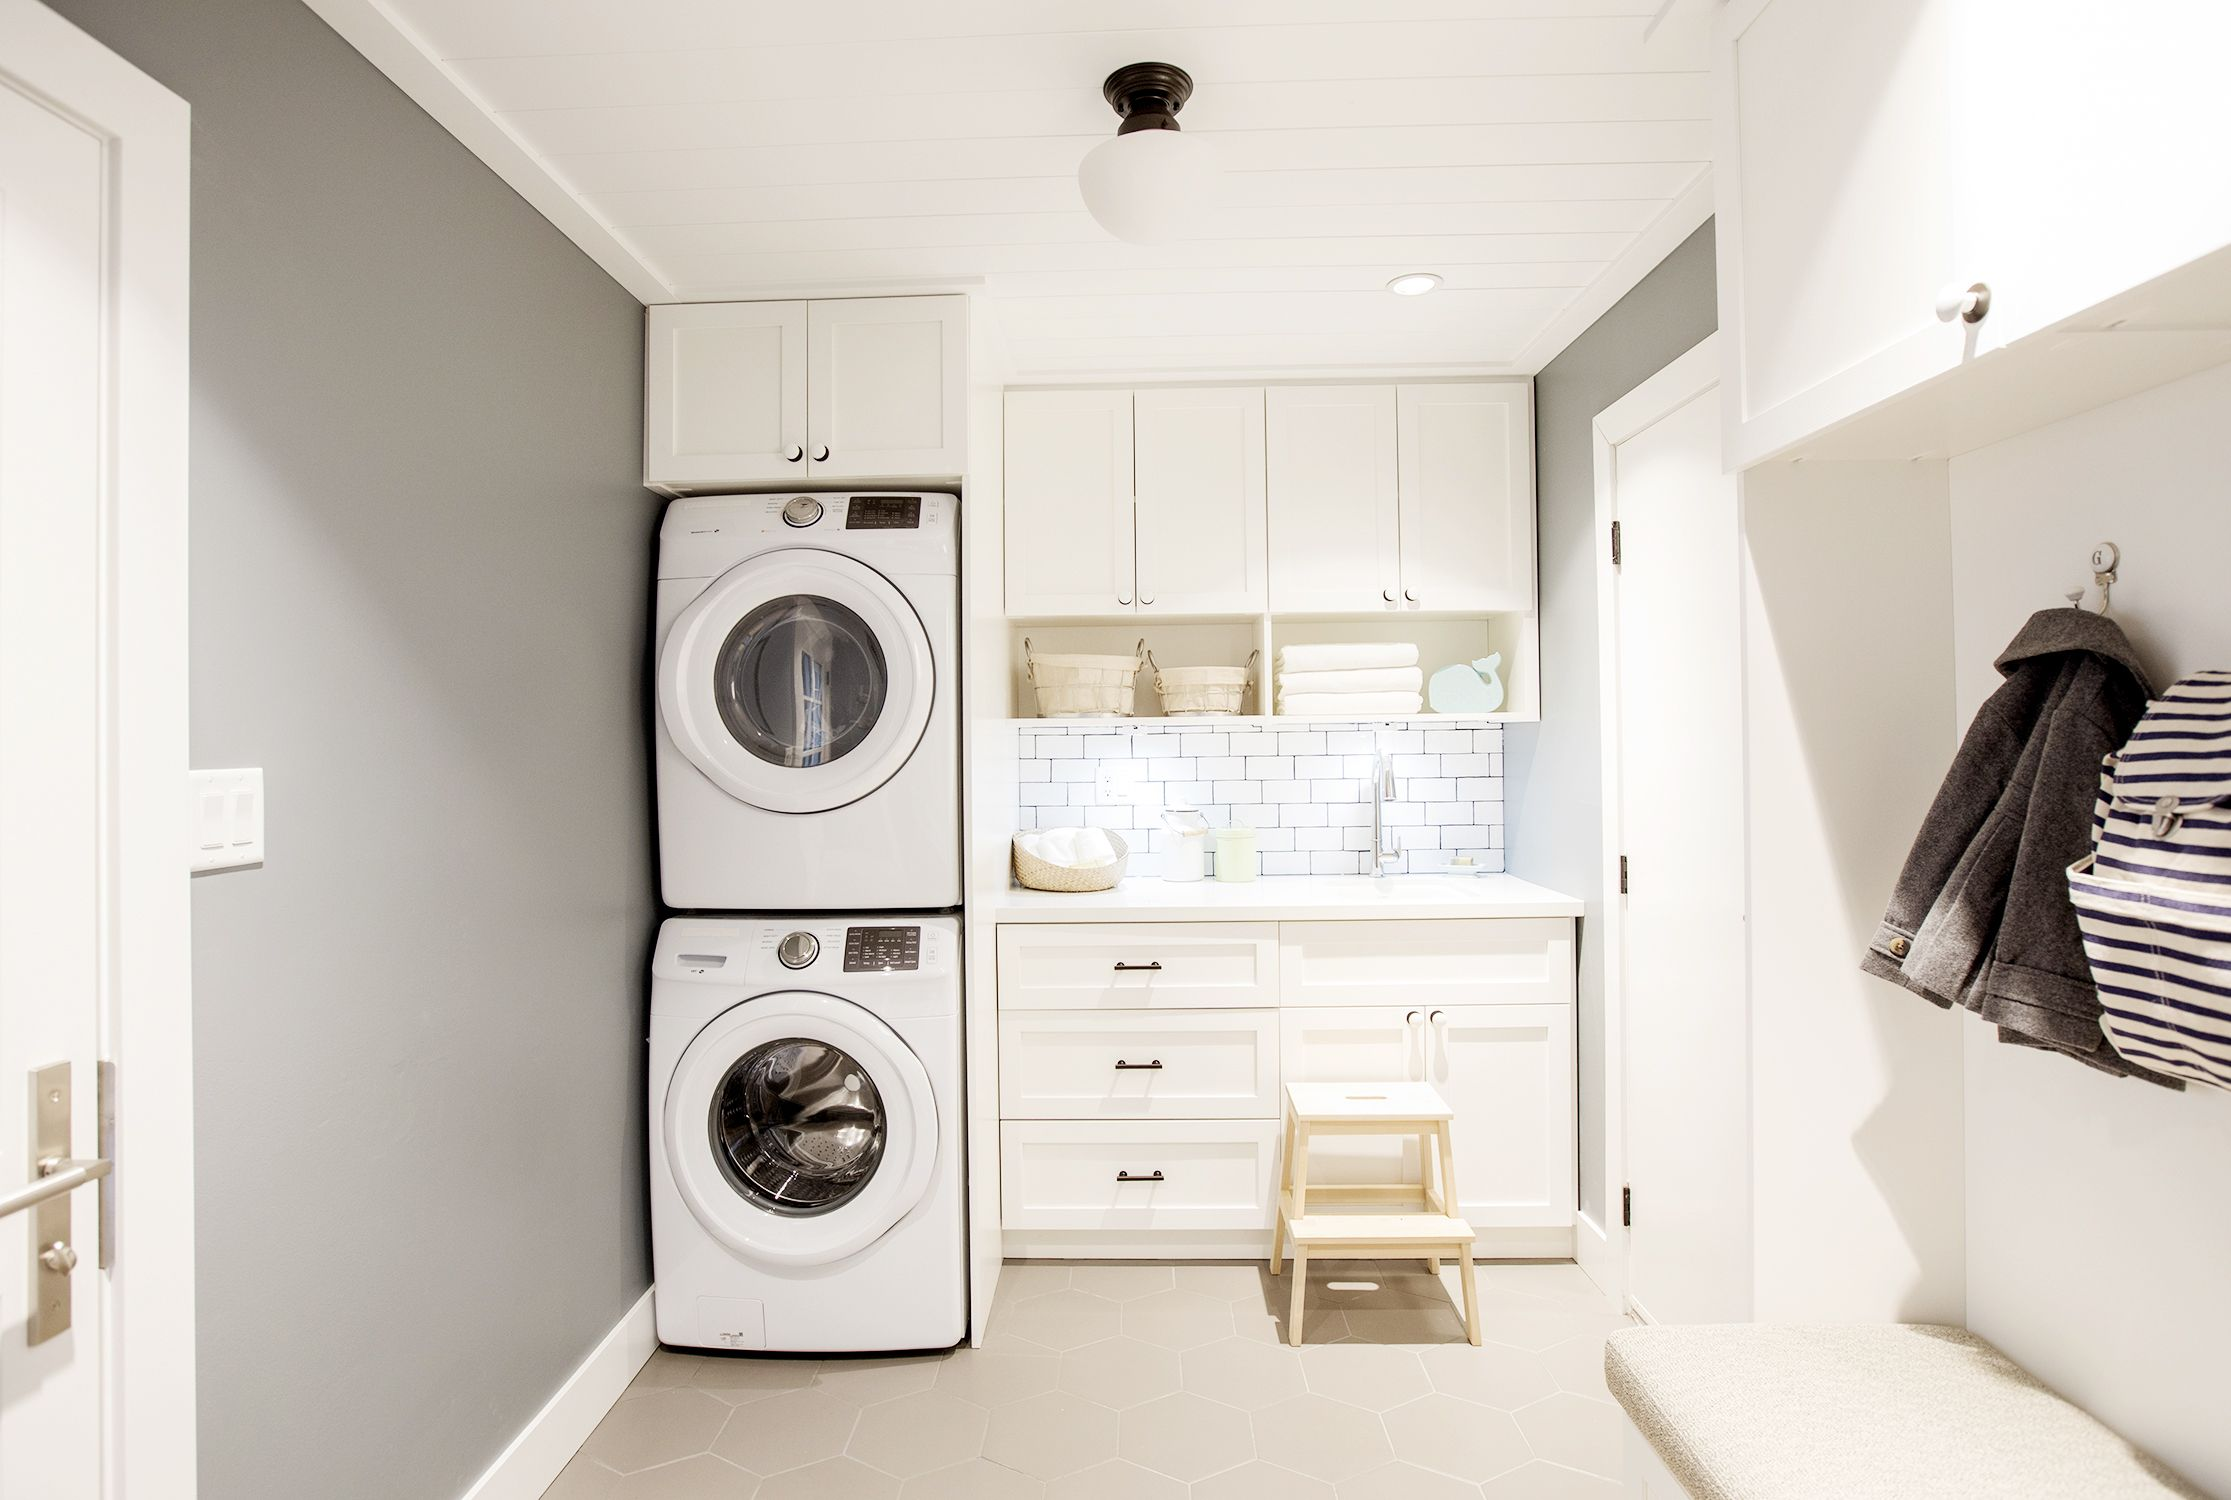 This Open Concept Living Space Packs Style Into Every Square Inch Stacked Washer Dryer Cabinets